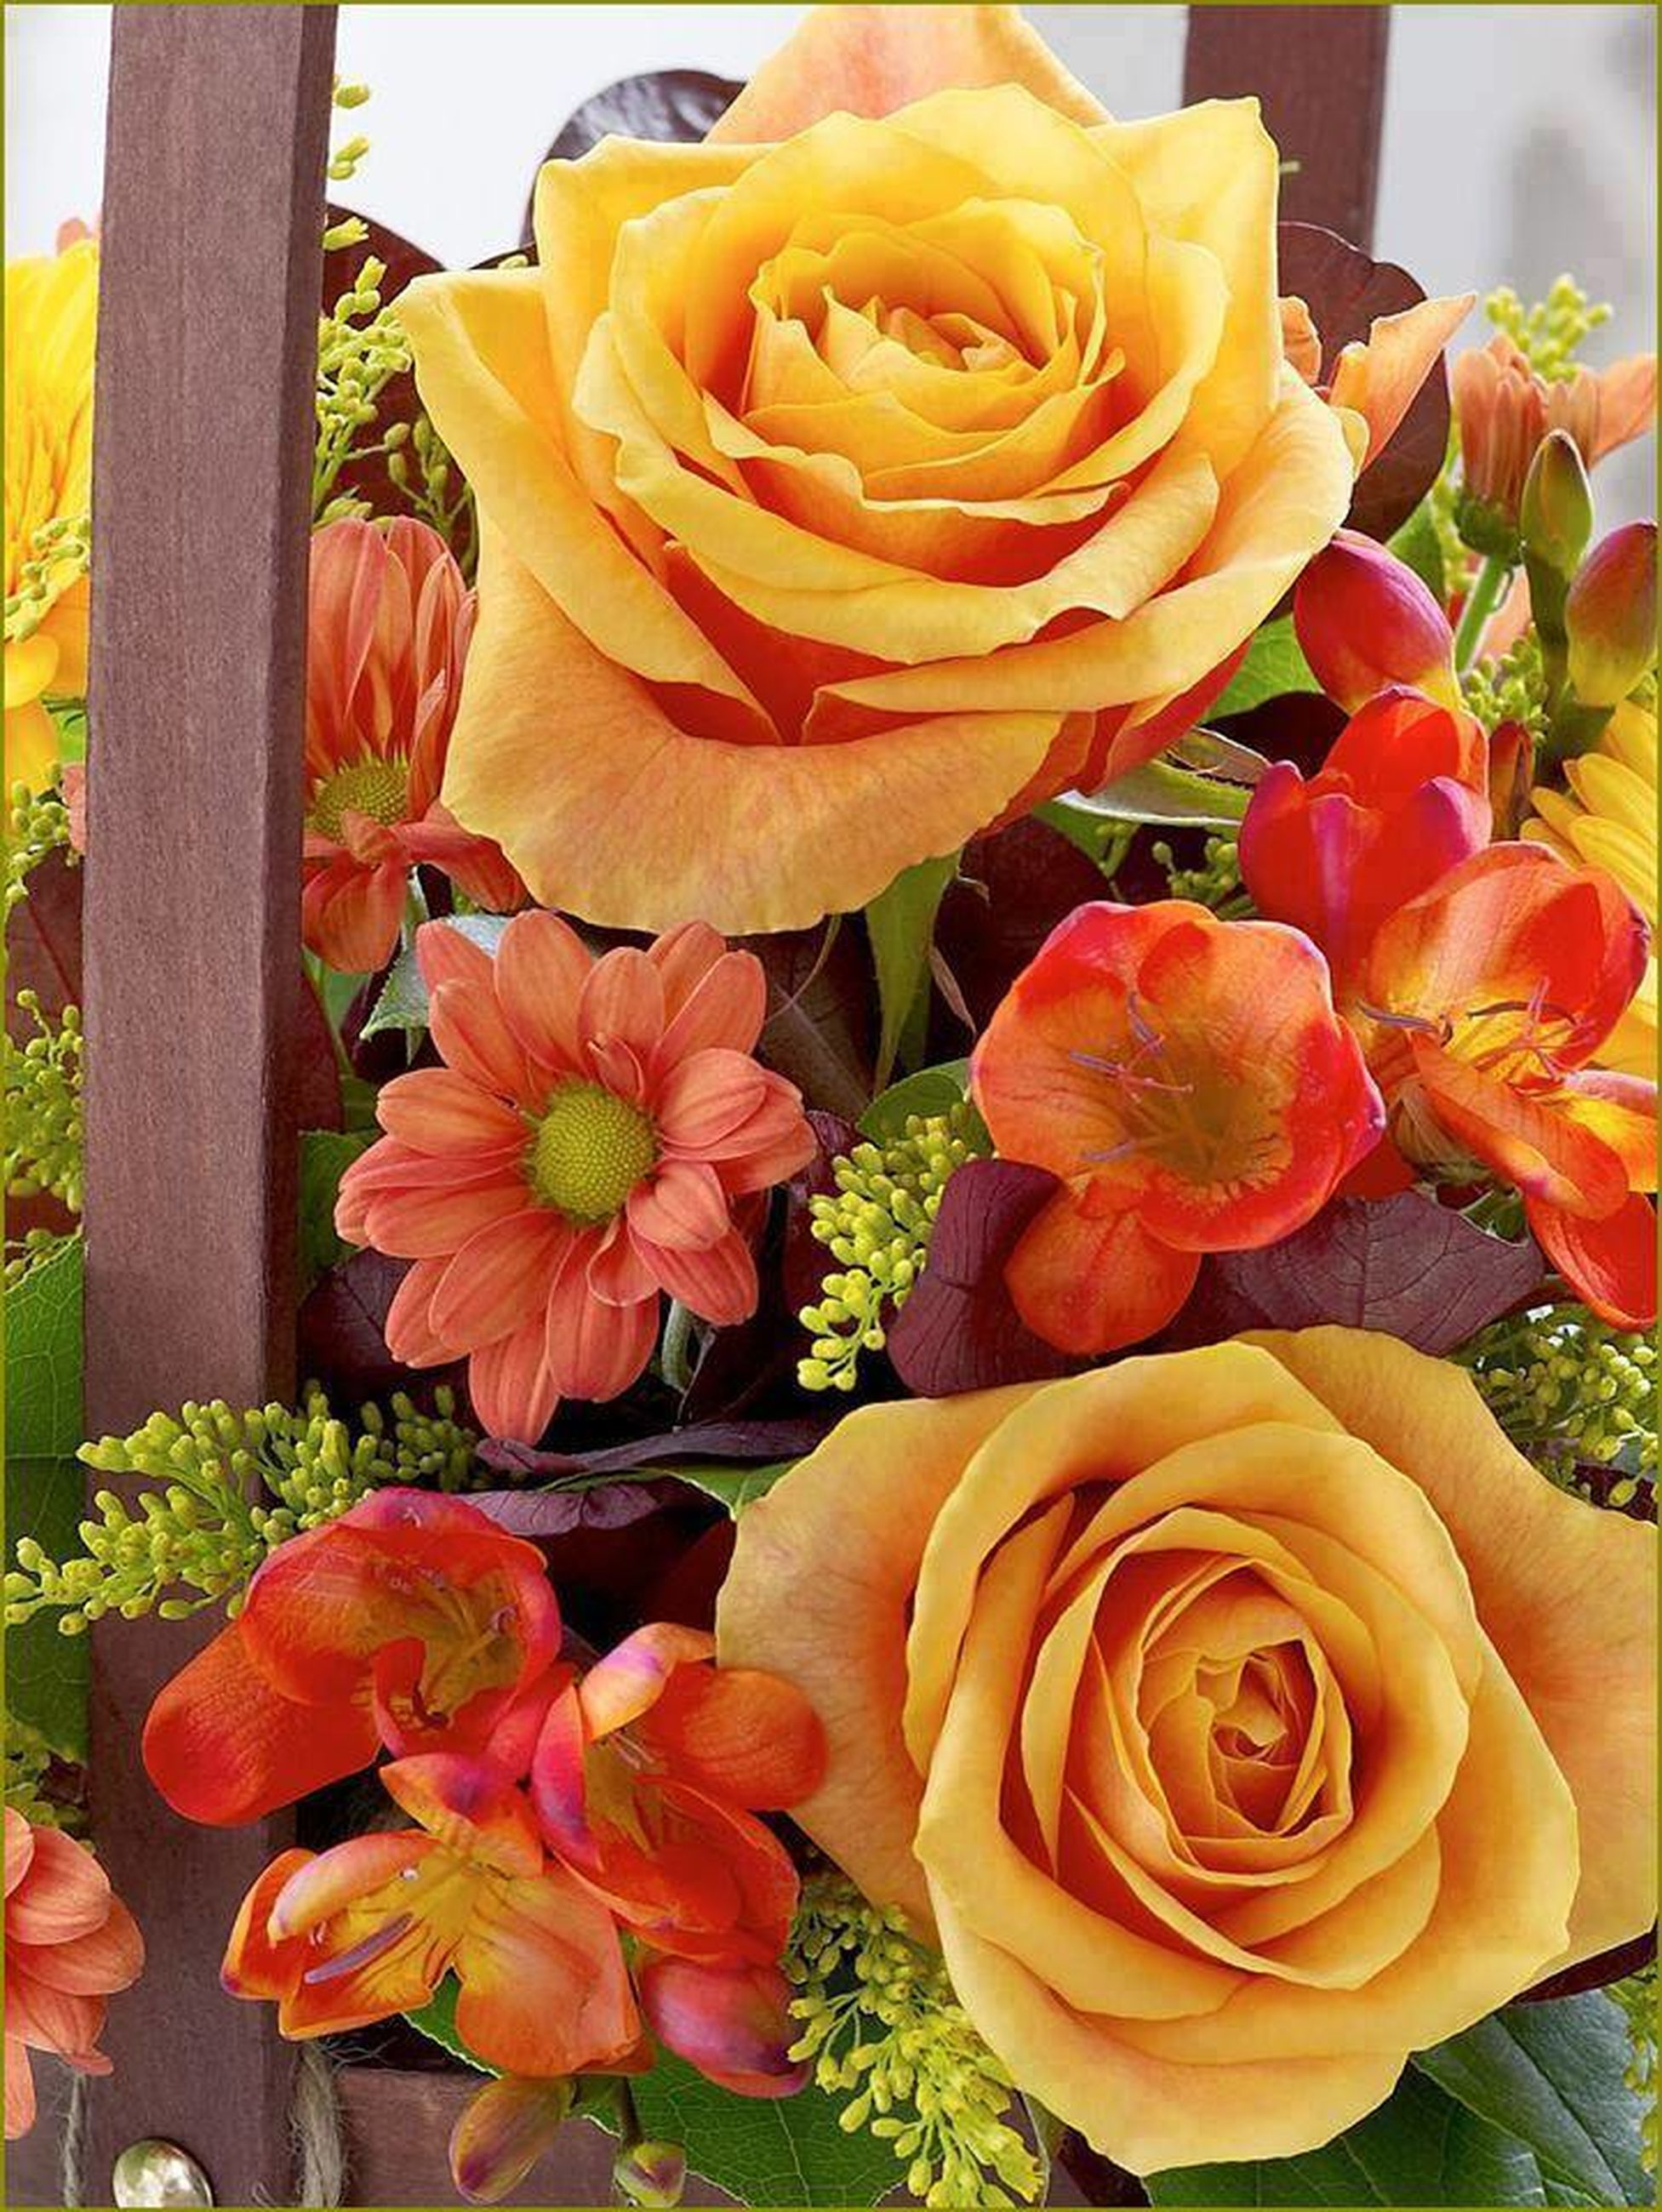 flower, freshness, rose - flower, petal, flower head, fragility, indoors, rose, beauty in nature, close-up, bouquet, yellow, blooming, vase, nature, flower arrangement, growth, multi colored, plant, no people